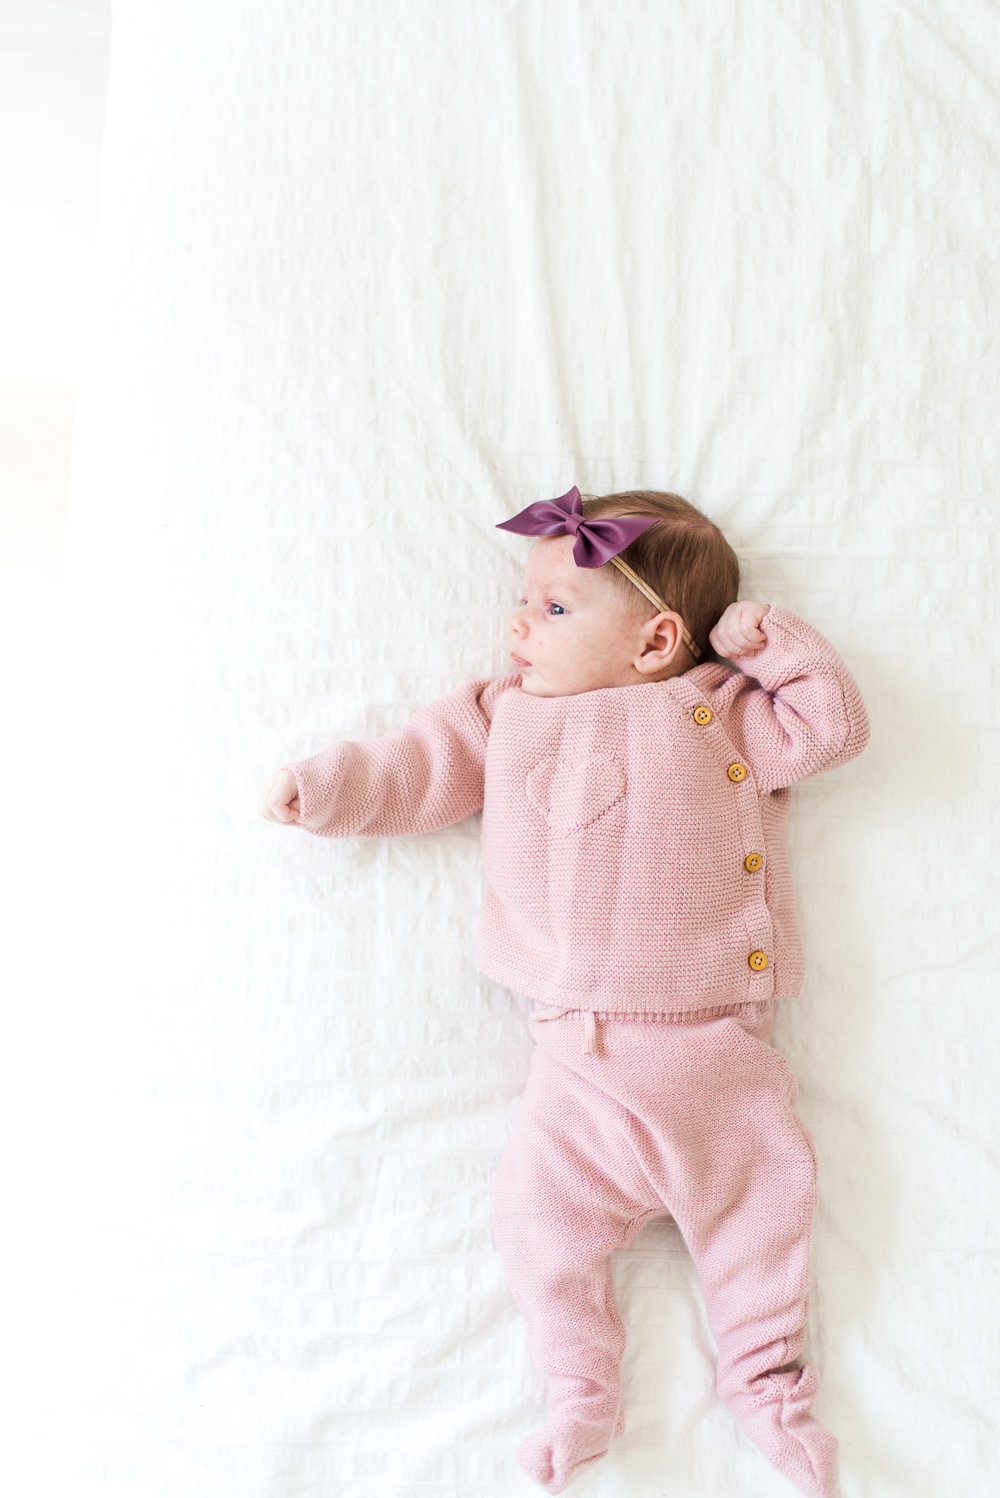 Sweet baby girl basic sweater and leggings:  https://www.zara.com/us/en/kids/mini-%7C-0-12-months/knitwear/-c760002p4997572.html